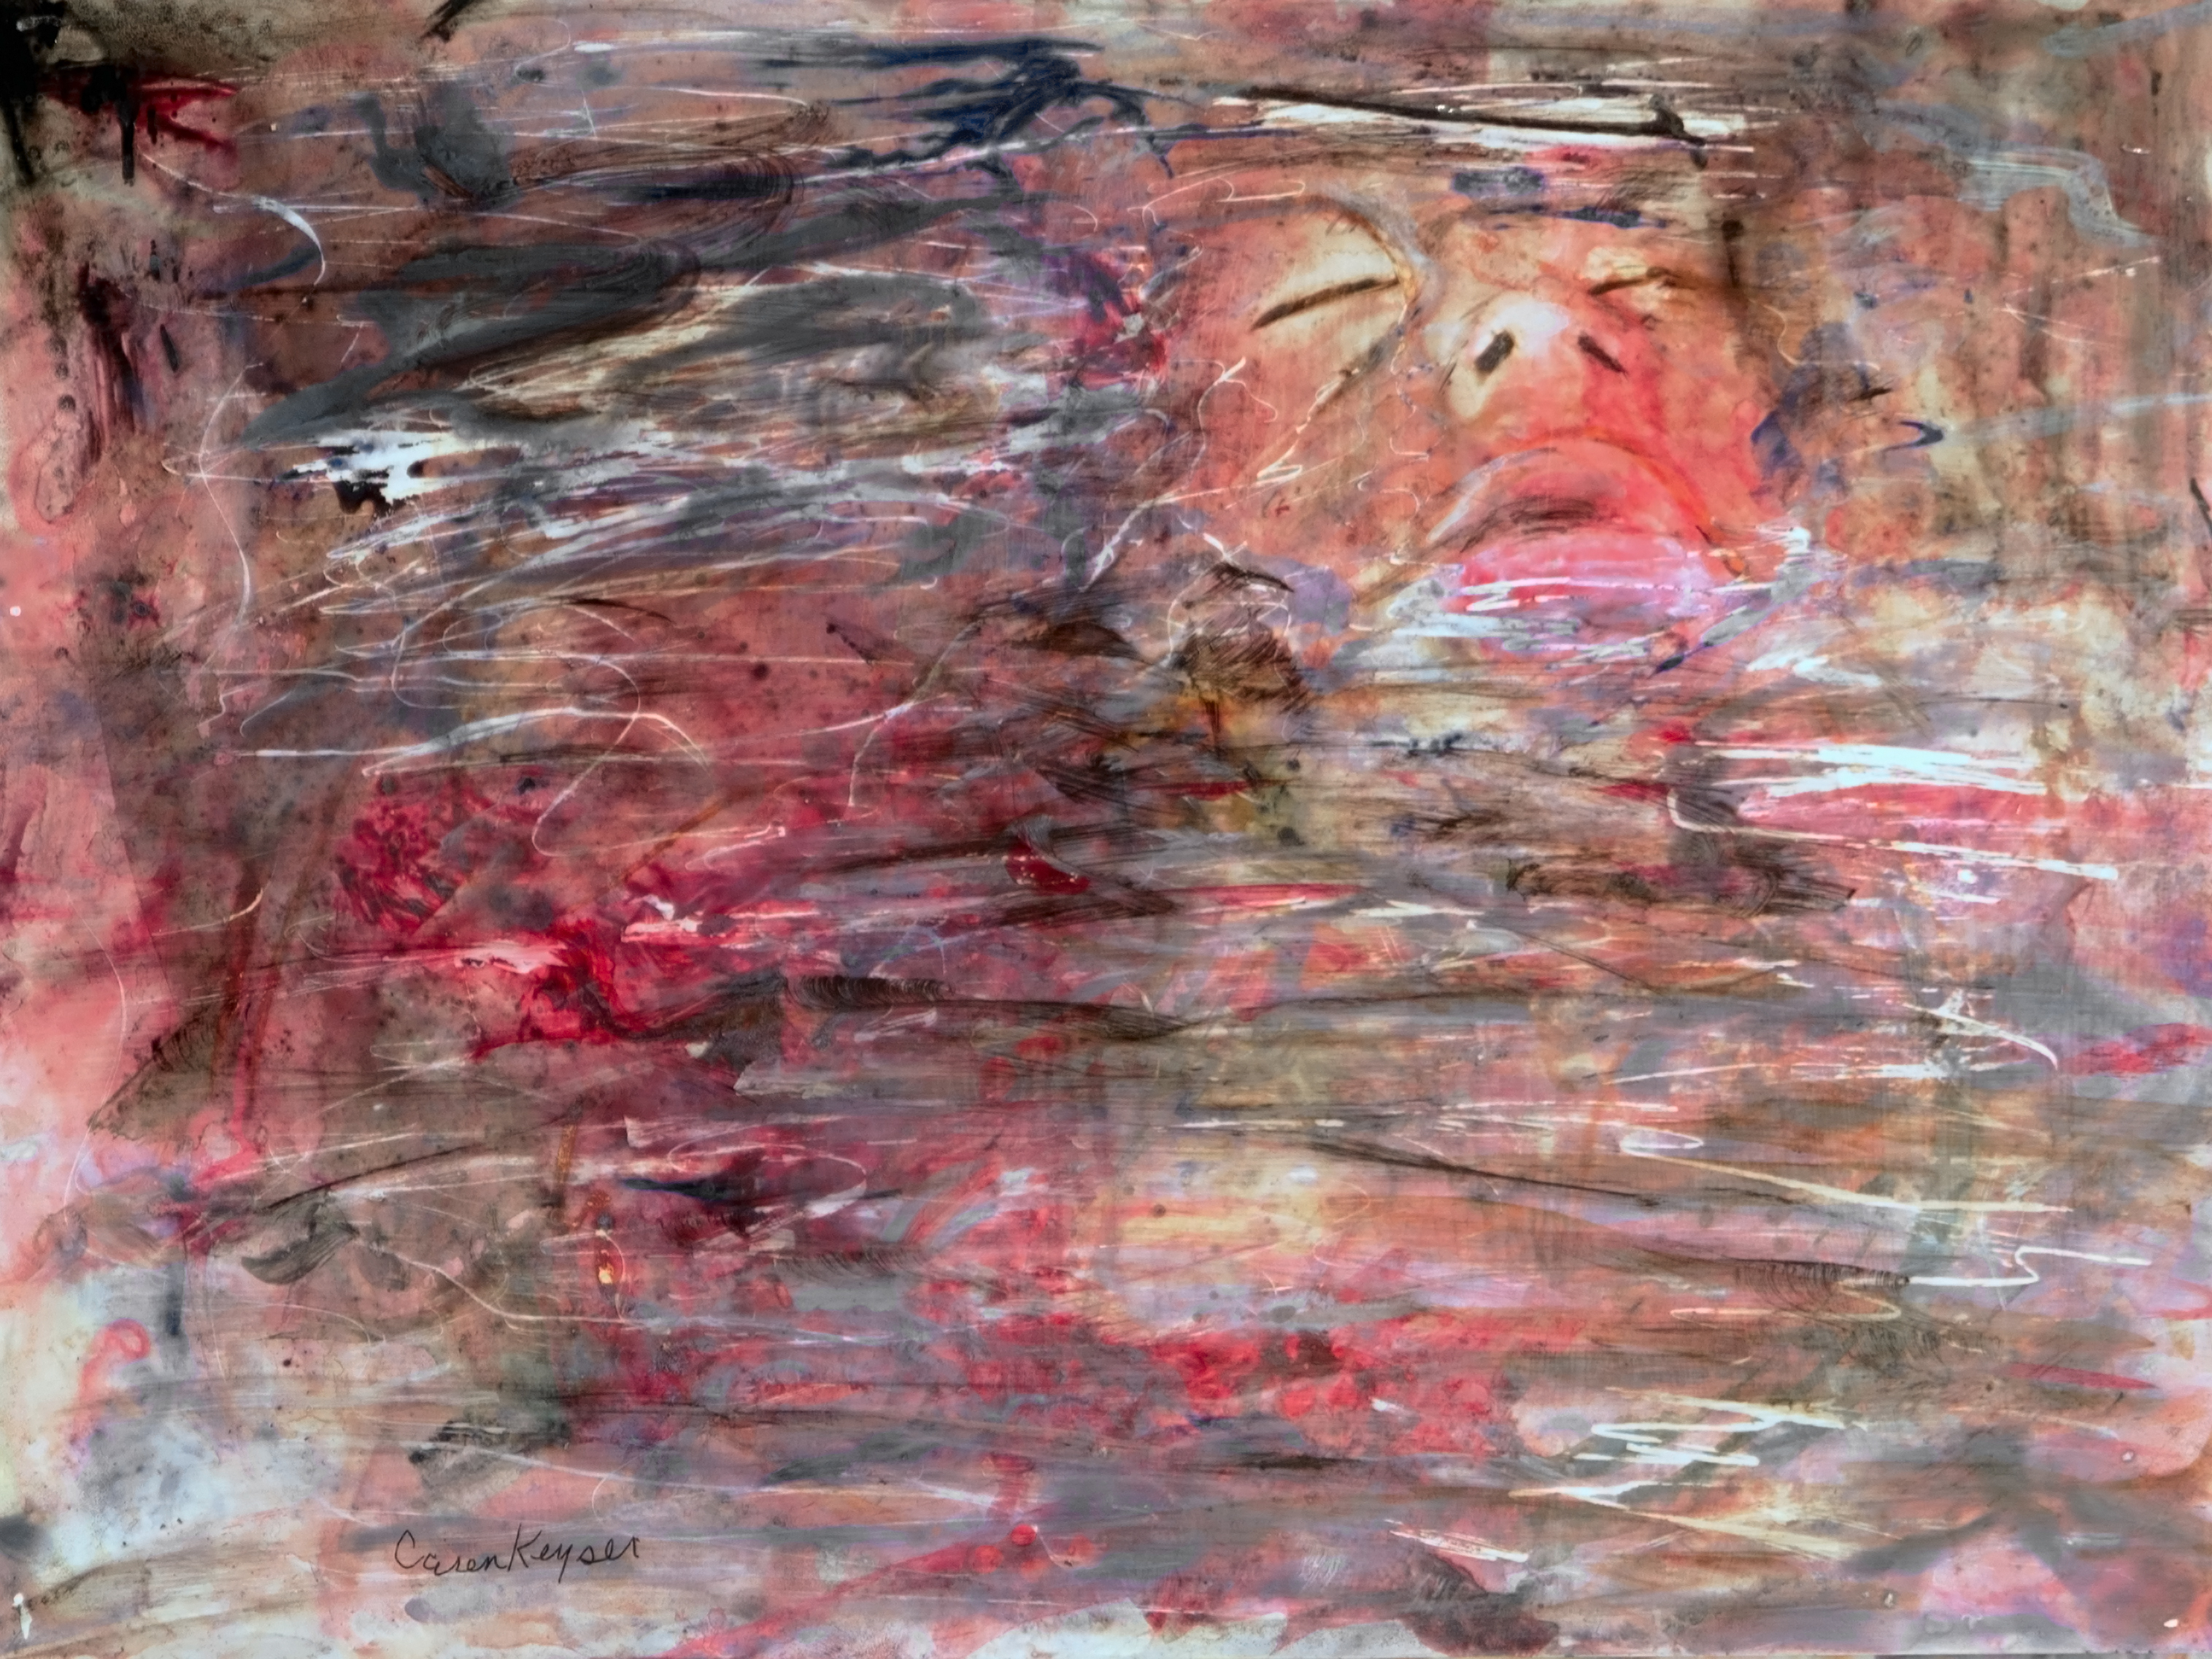 Caren Keyser; Blood In The Water, 2015, Original Painting Acrylic, 12 x 11 inches. Artwork description: 241 The victim has drowned. Her face barely shows above the surface of the water.  It is a troubling image but suited to the number of serial killer novels I tend to read.  The subconscious shows itself in art. ...